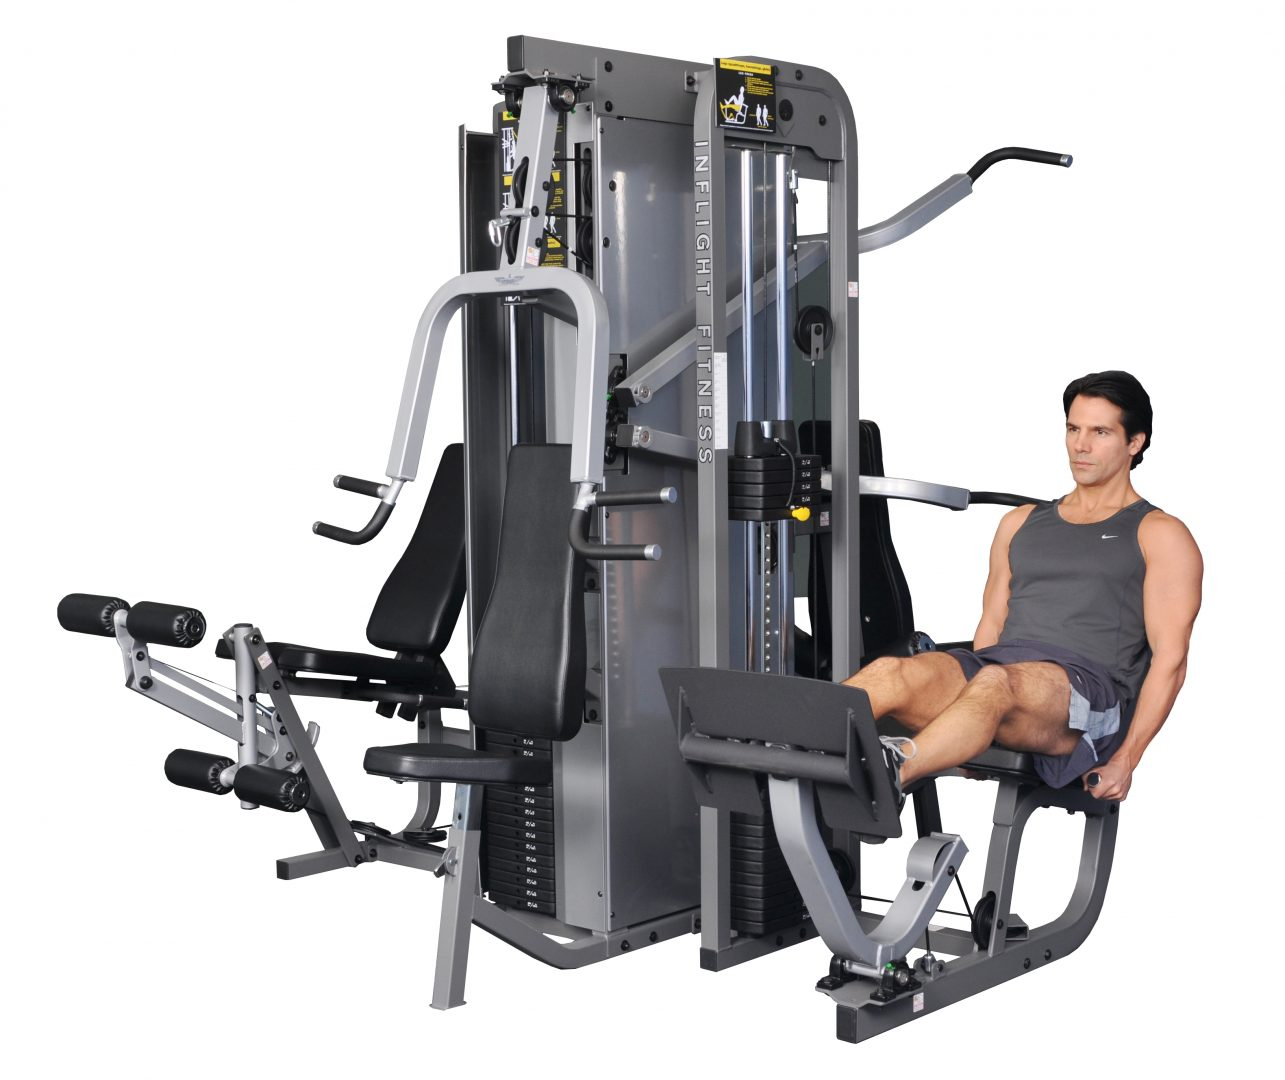 Home Exercise Equipment Usa: InFlight Fitness 3 Stack, 4 Station Multi Gym